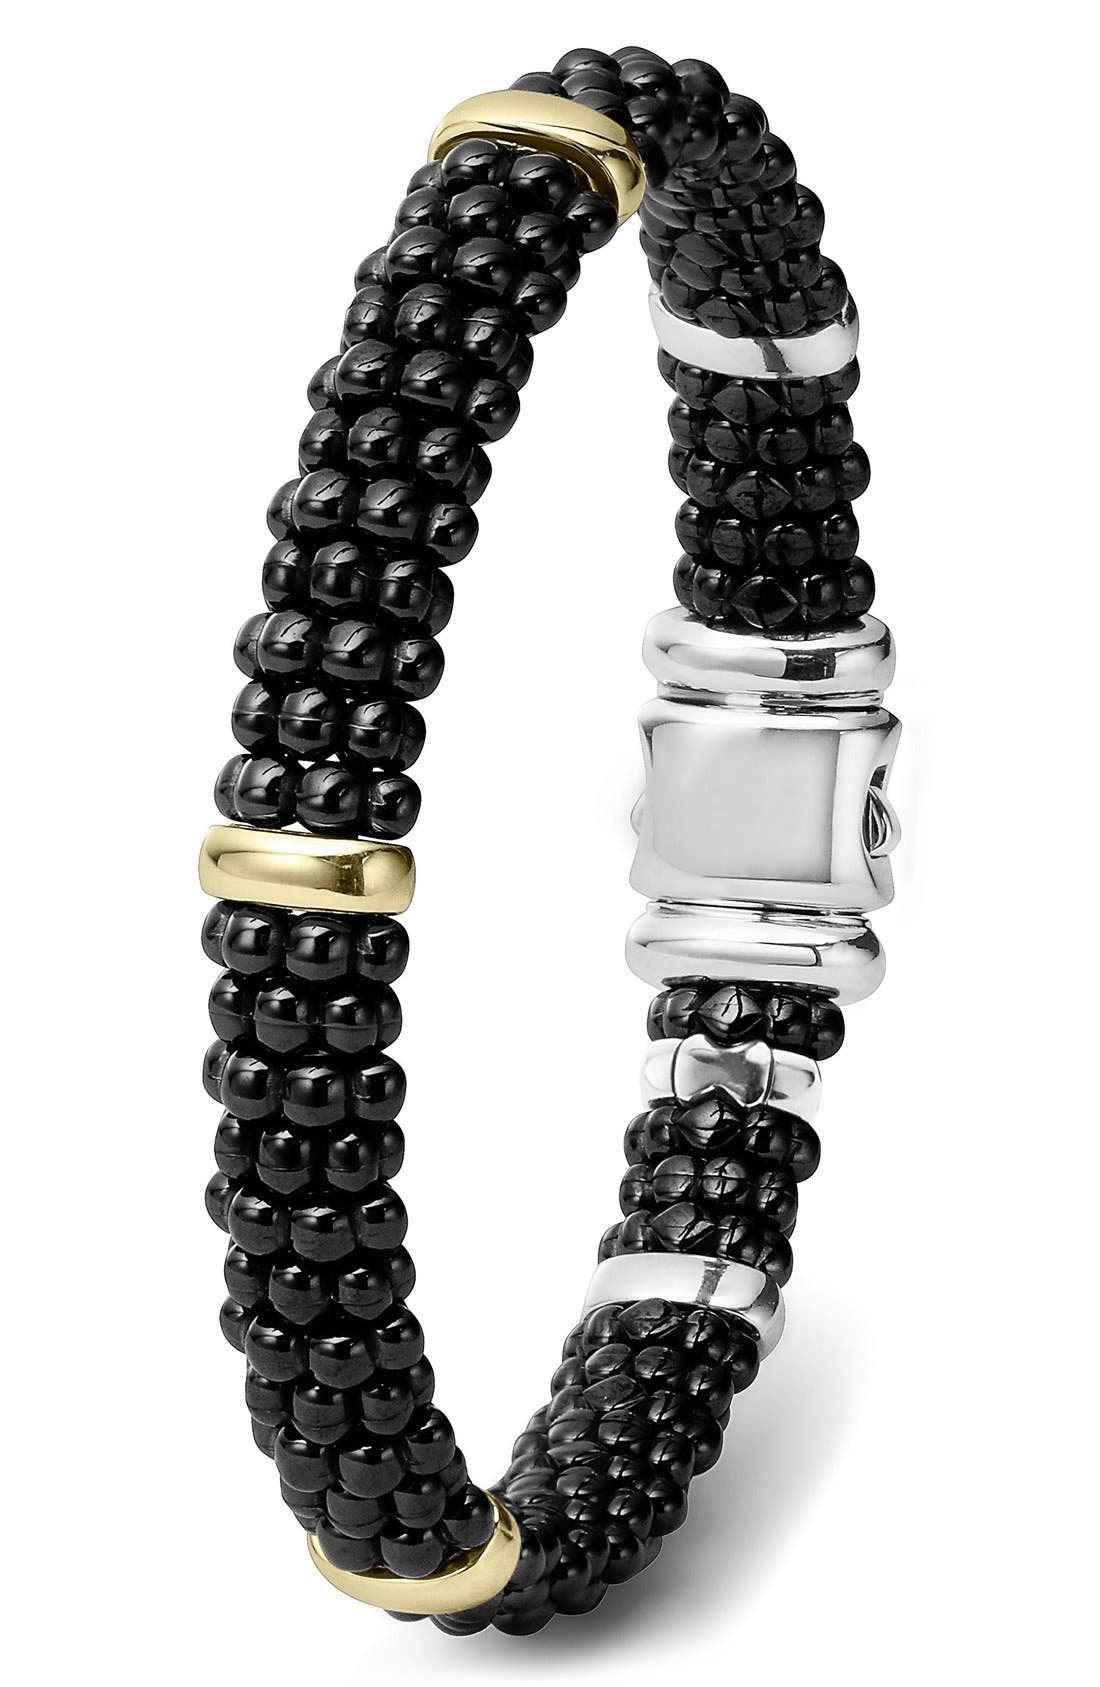 'Black Caviar' Rope Bracelet,                             Alternate thumbnail 3, color,                             BLACK CAVIAR/ GOLD